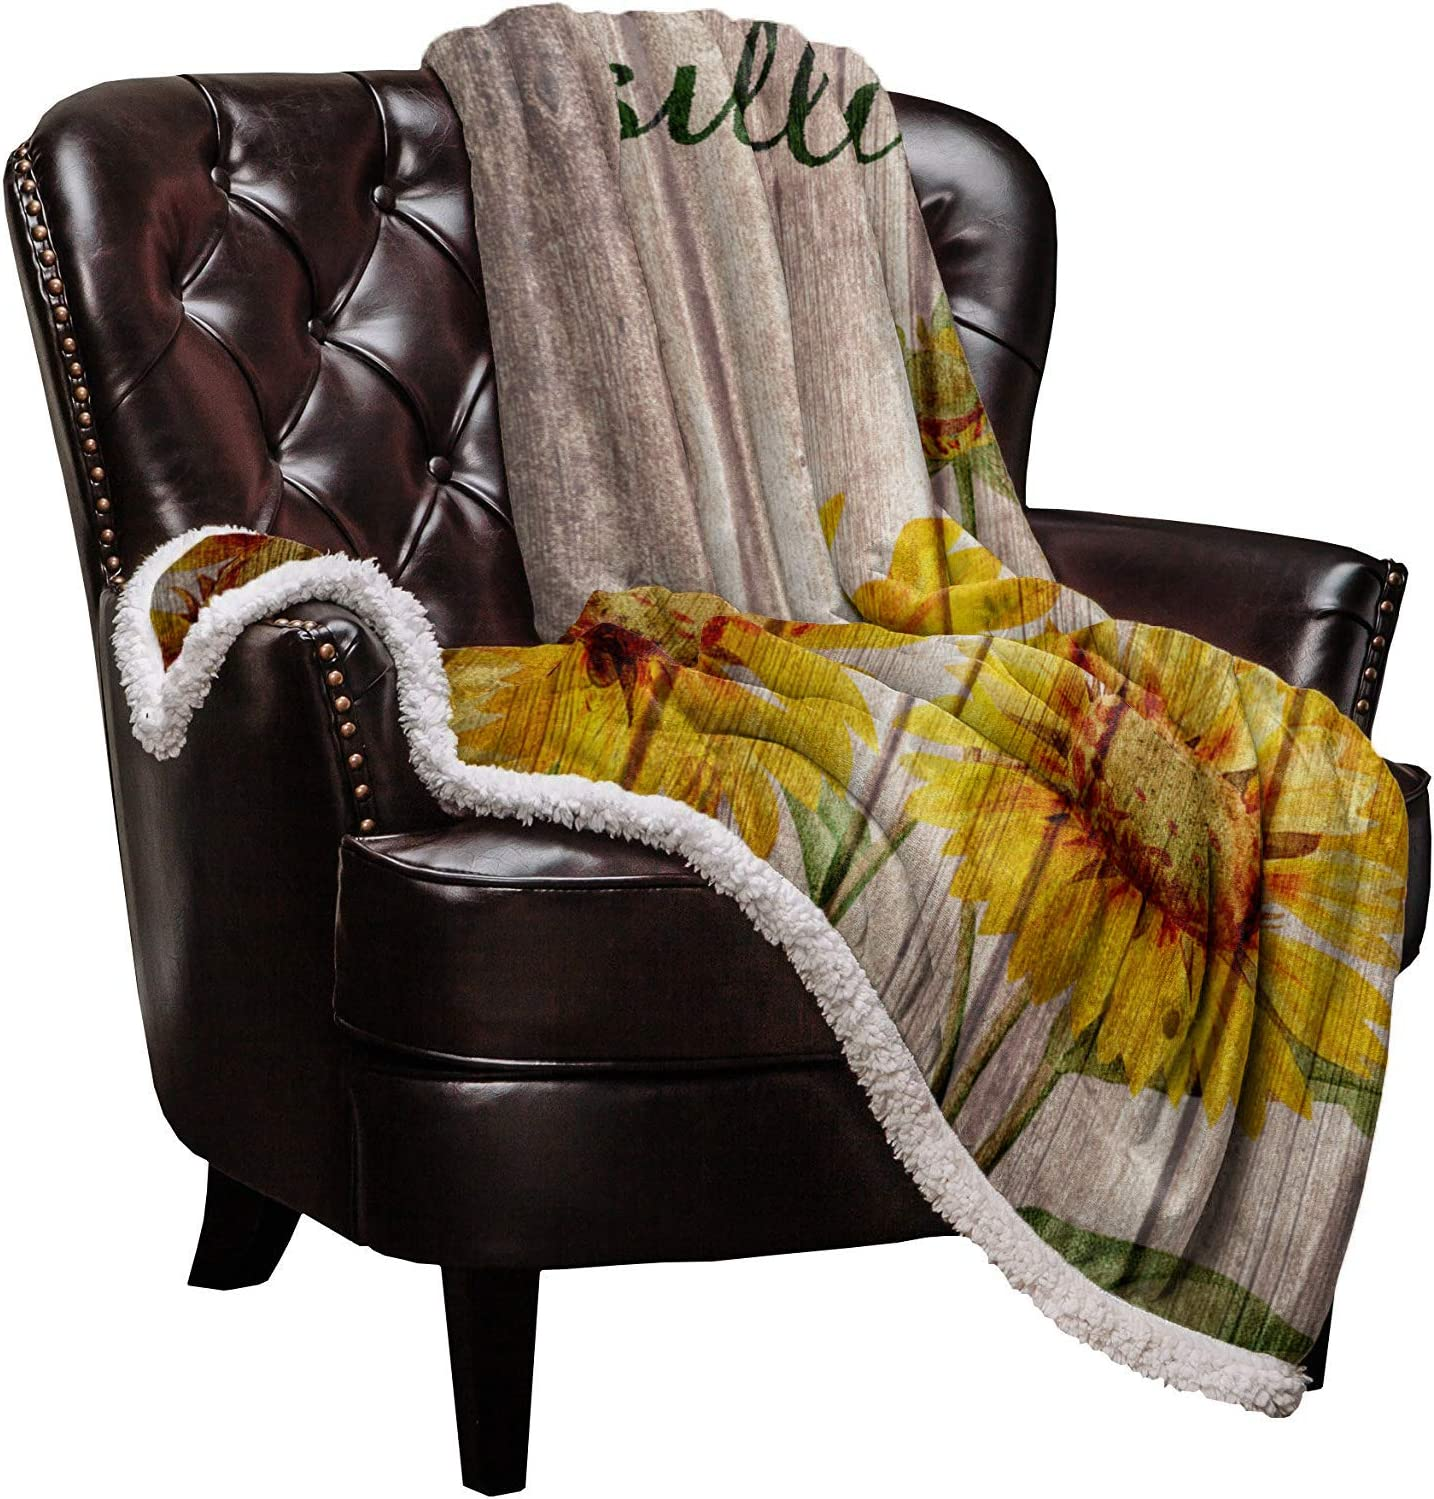 Sherpa Fleece Throw Fixed Time sale price for sale Blanket Sunflower Soft Warm Blankets Blooms